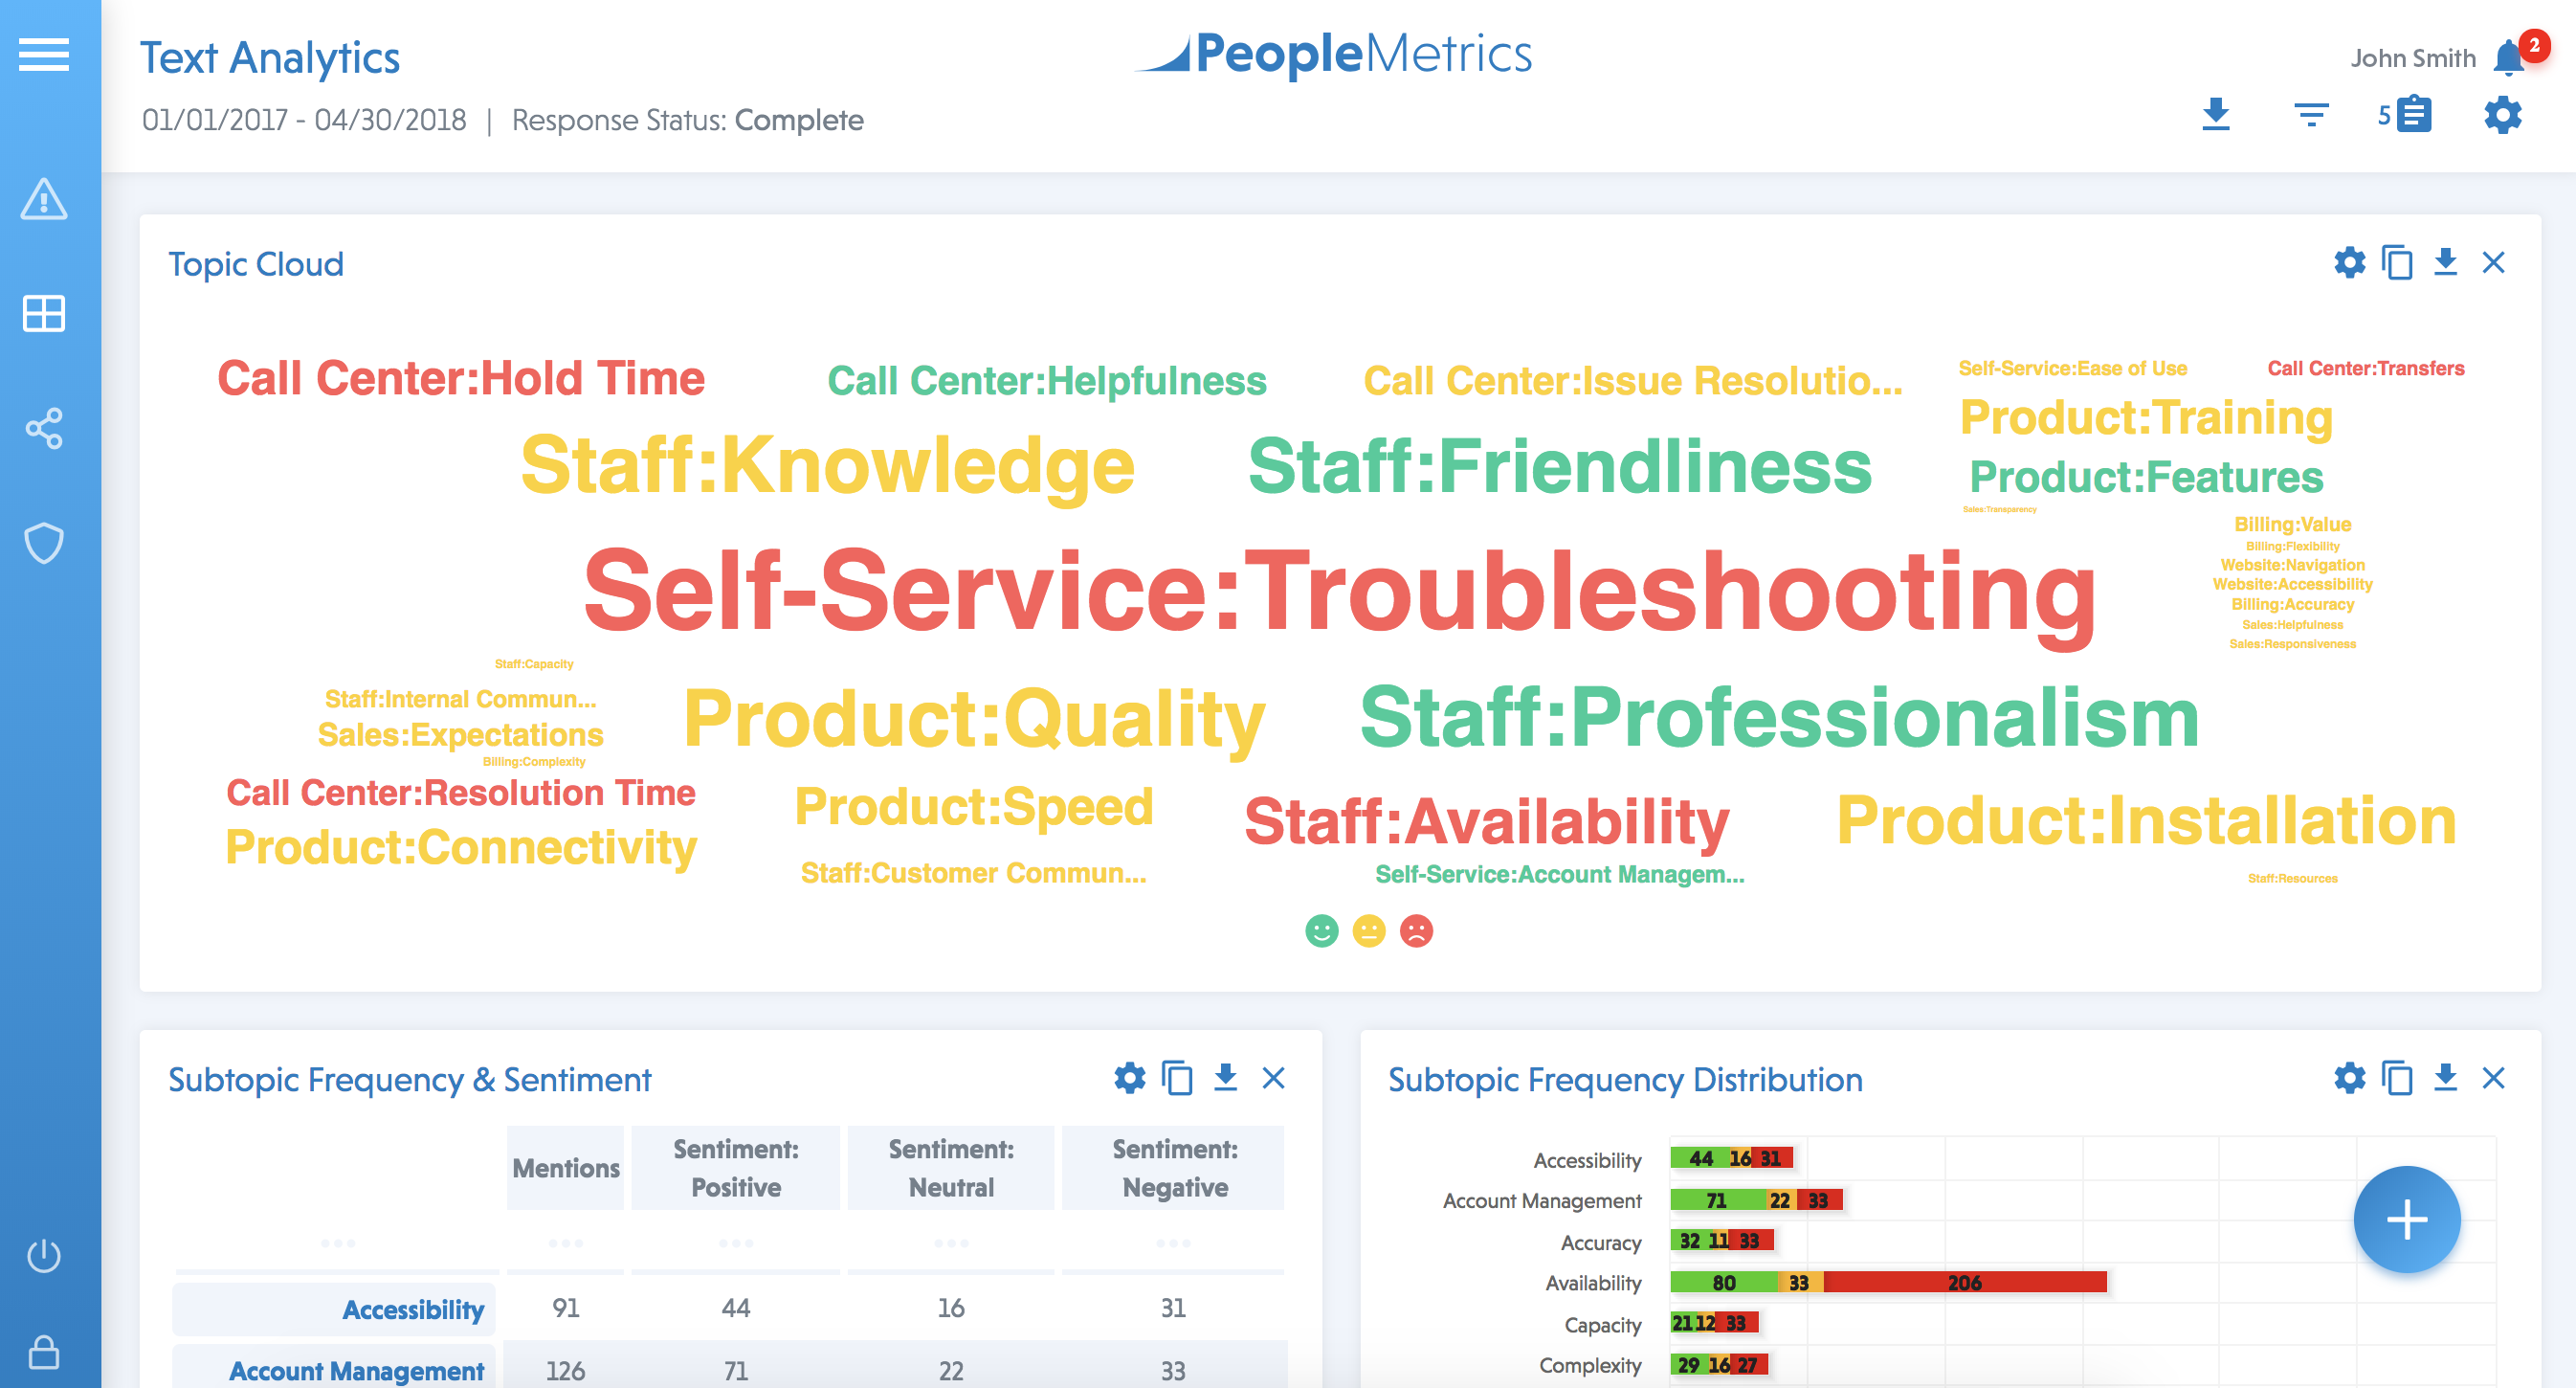 Text Analytics in the PeopleMetrics Customer Experience Management (CEM) Platform